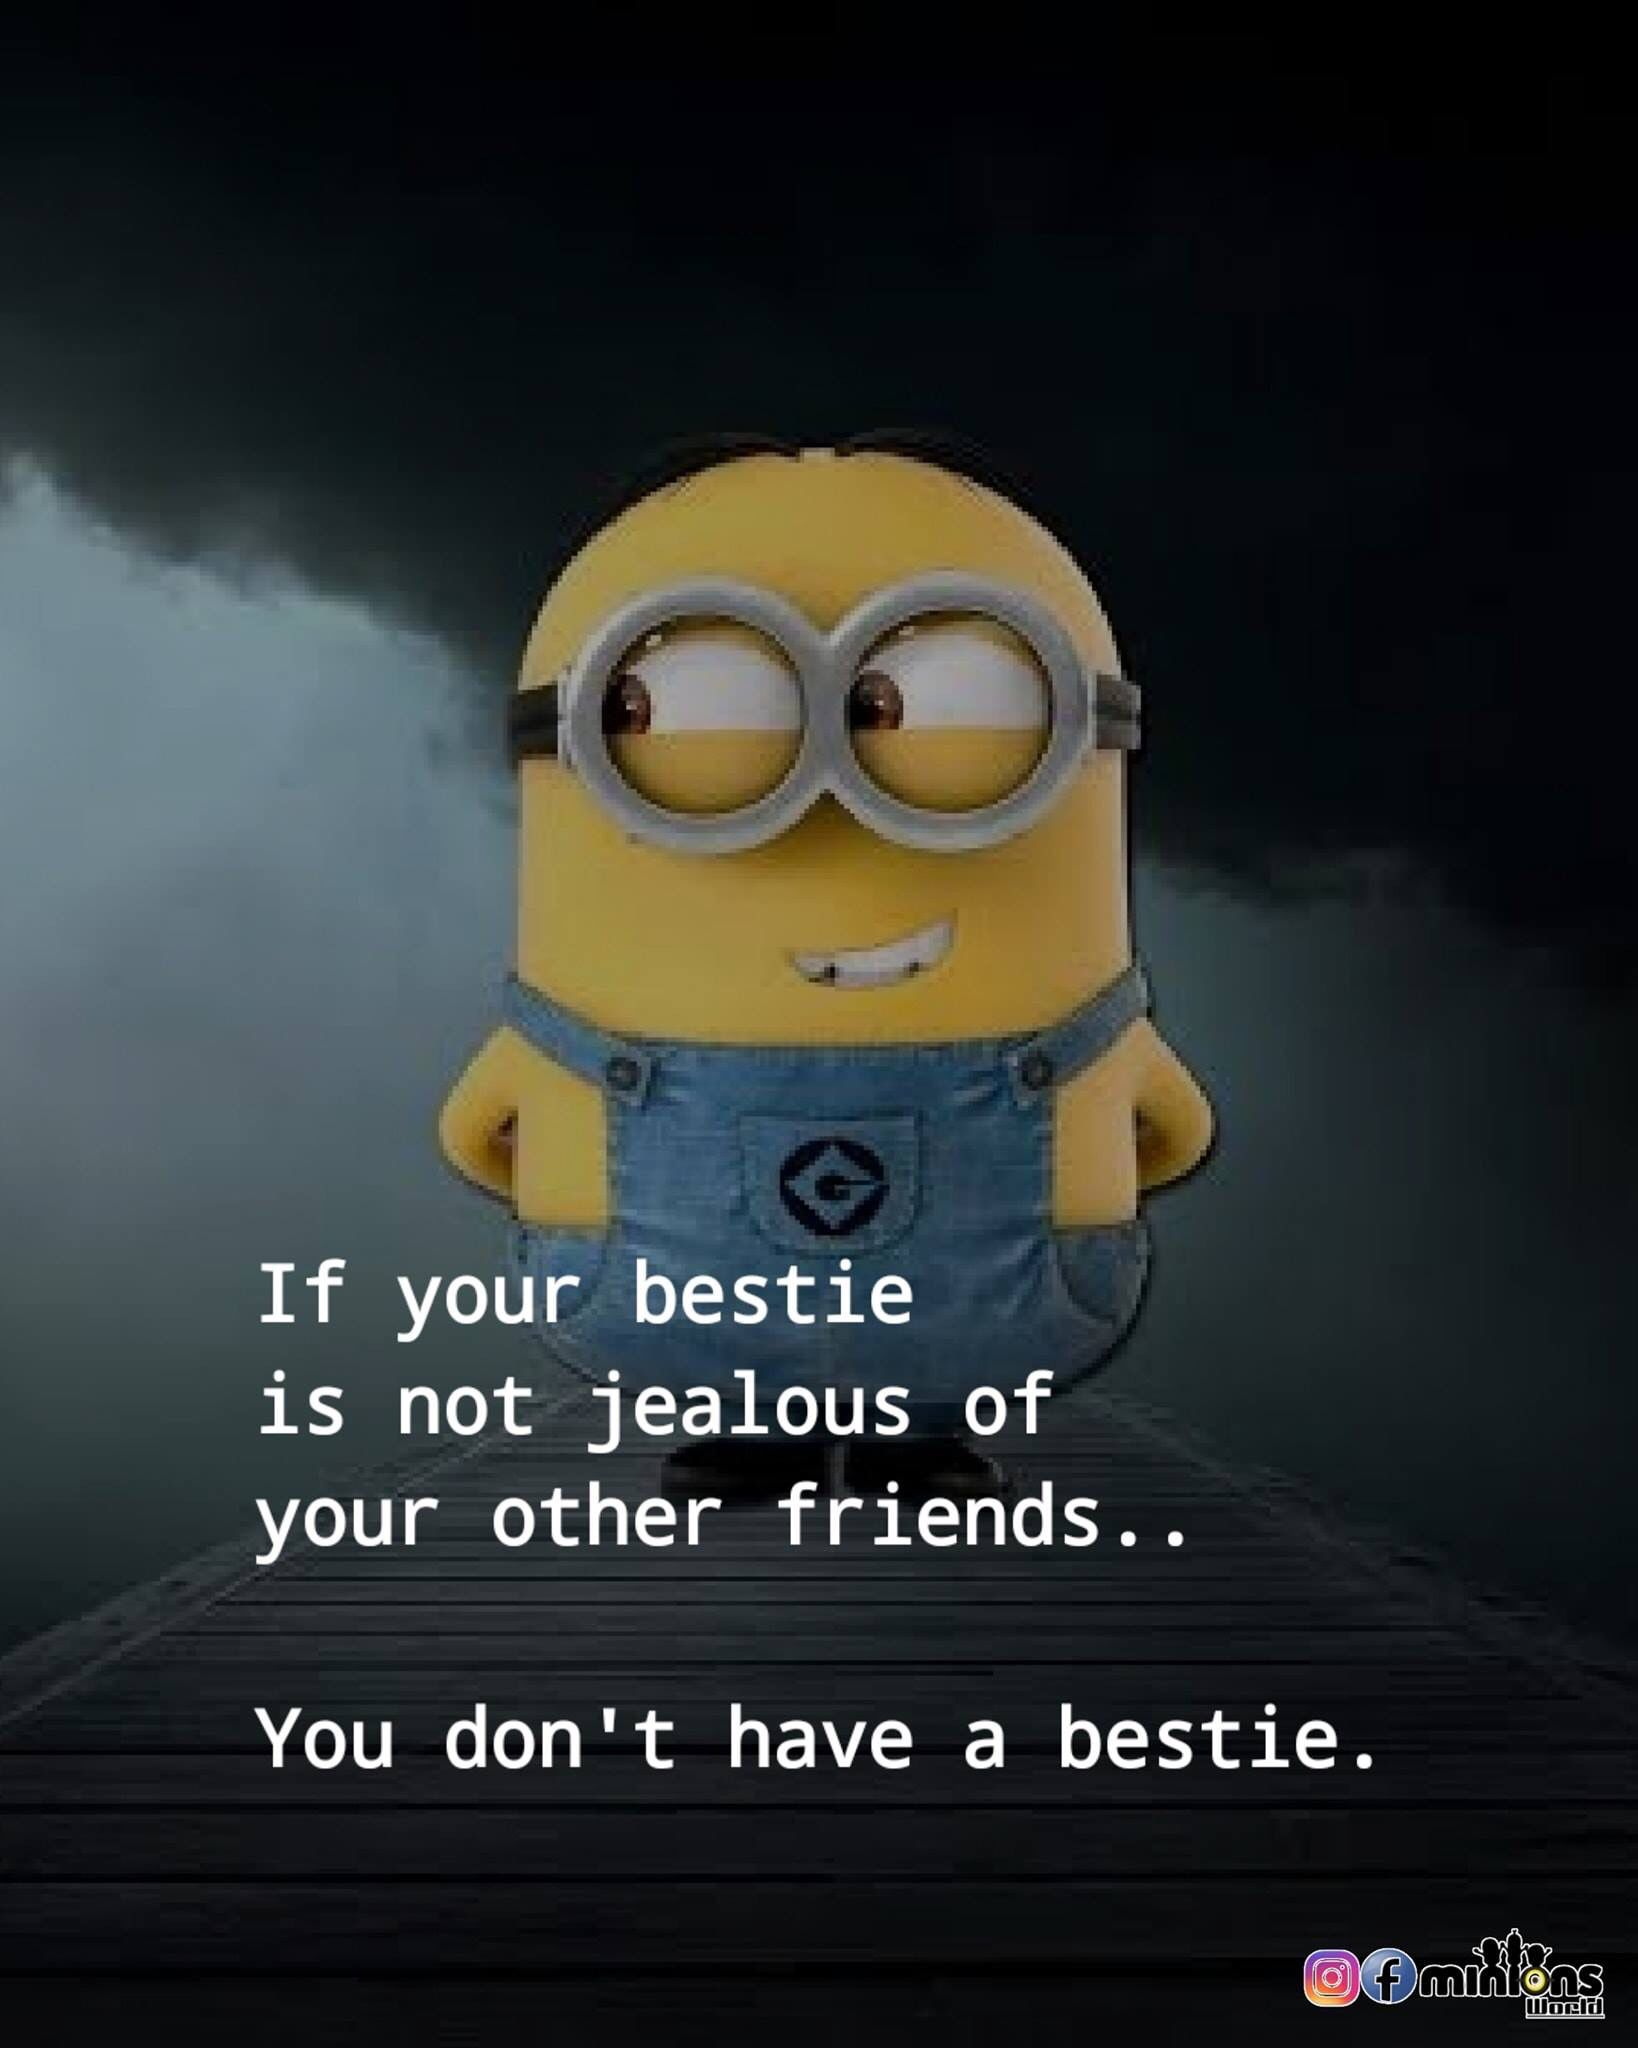 Pin By Swetha T On Minions Funny Minion Quotes Minions Funny Minions Love